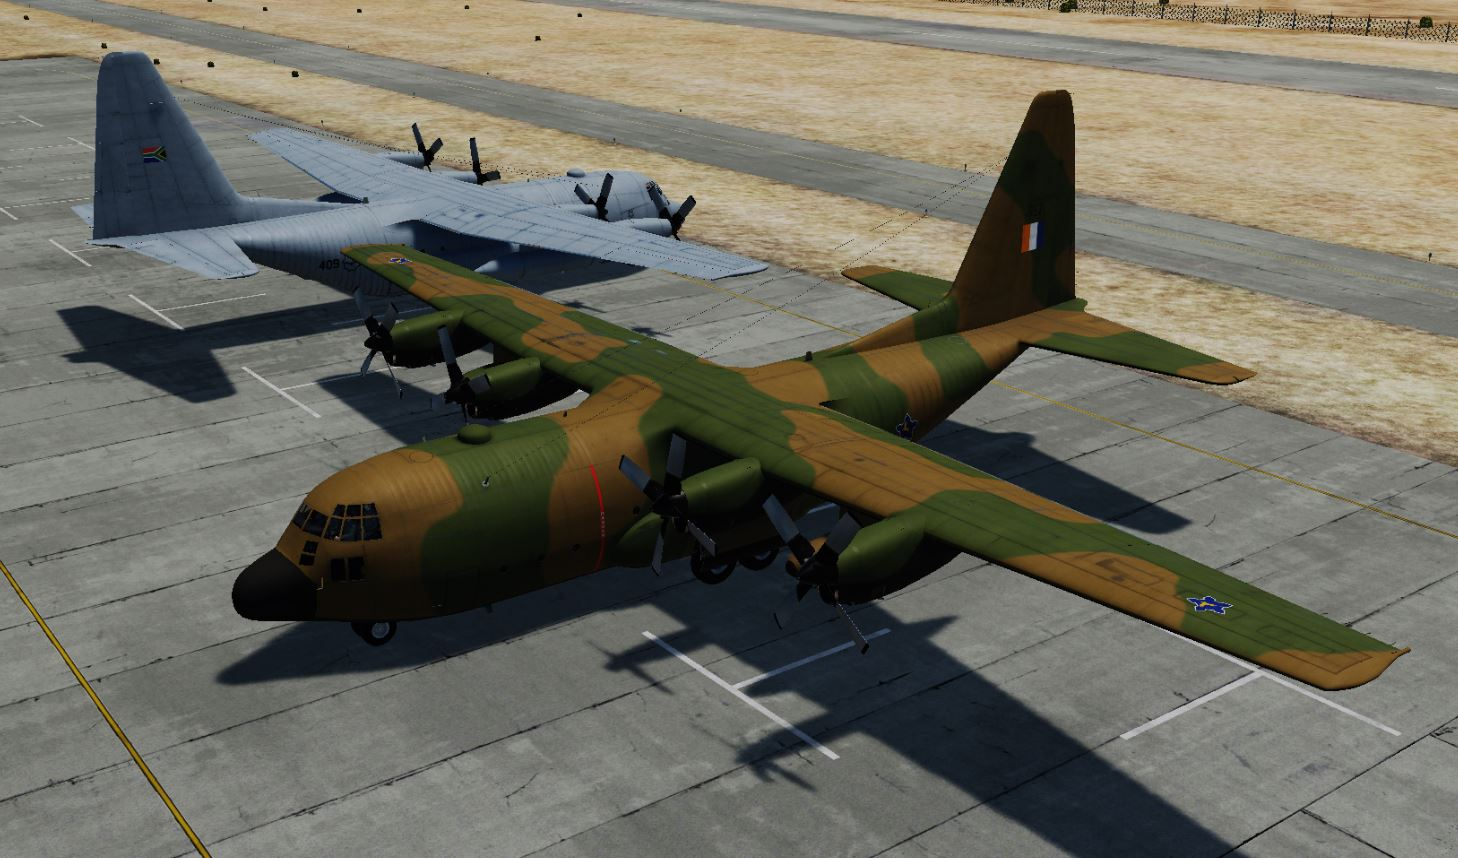 SAAF C-130's (Updated)